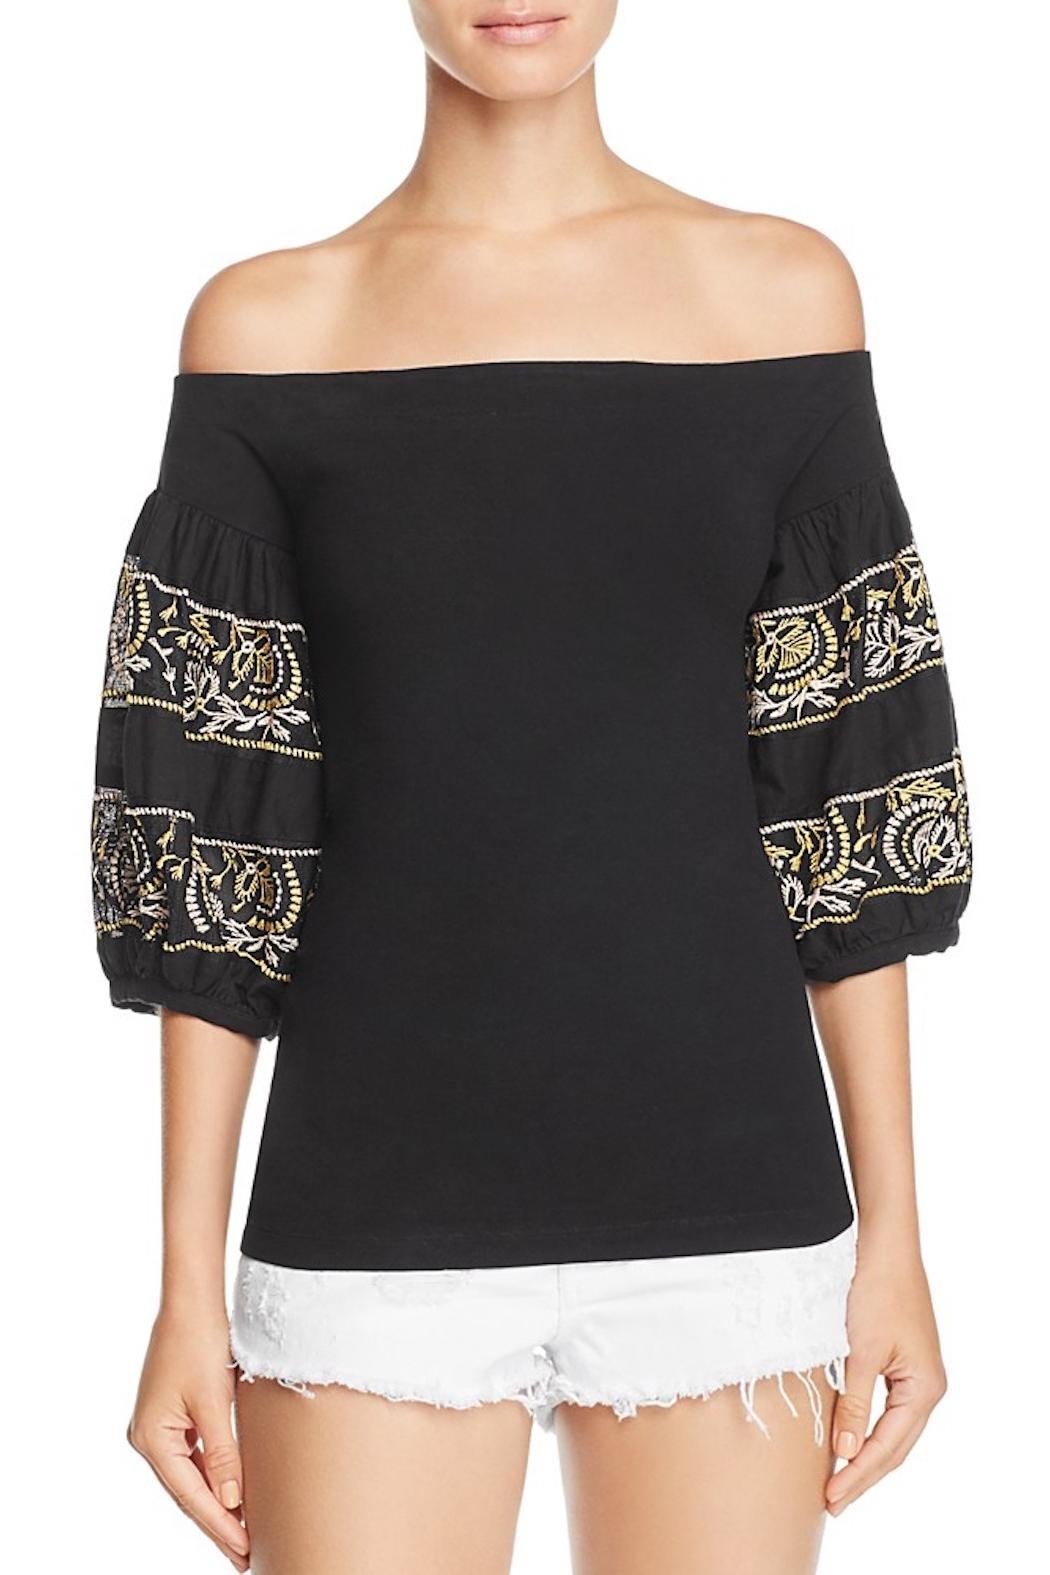 Free People Embroidered Top - Main Image